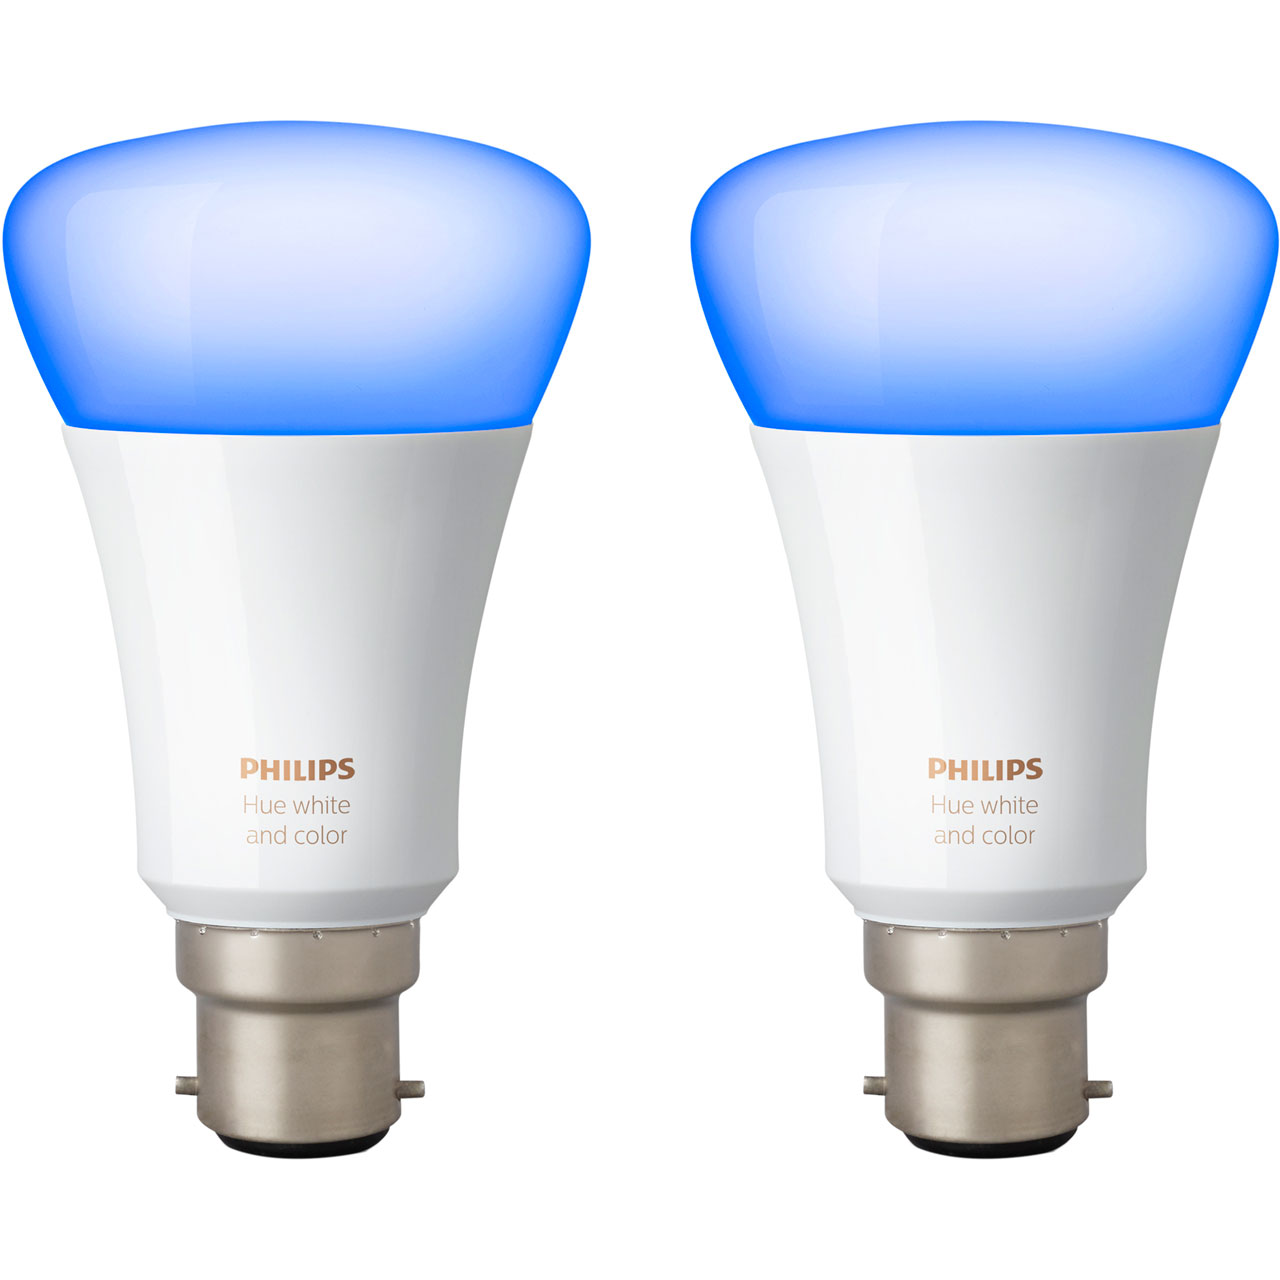 philips hue e14 fitting trendy philips hue e14 fitting with philips hue e14 fitting philips. Black Bedroom Furniture Sets. Home Design Ideas